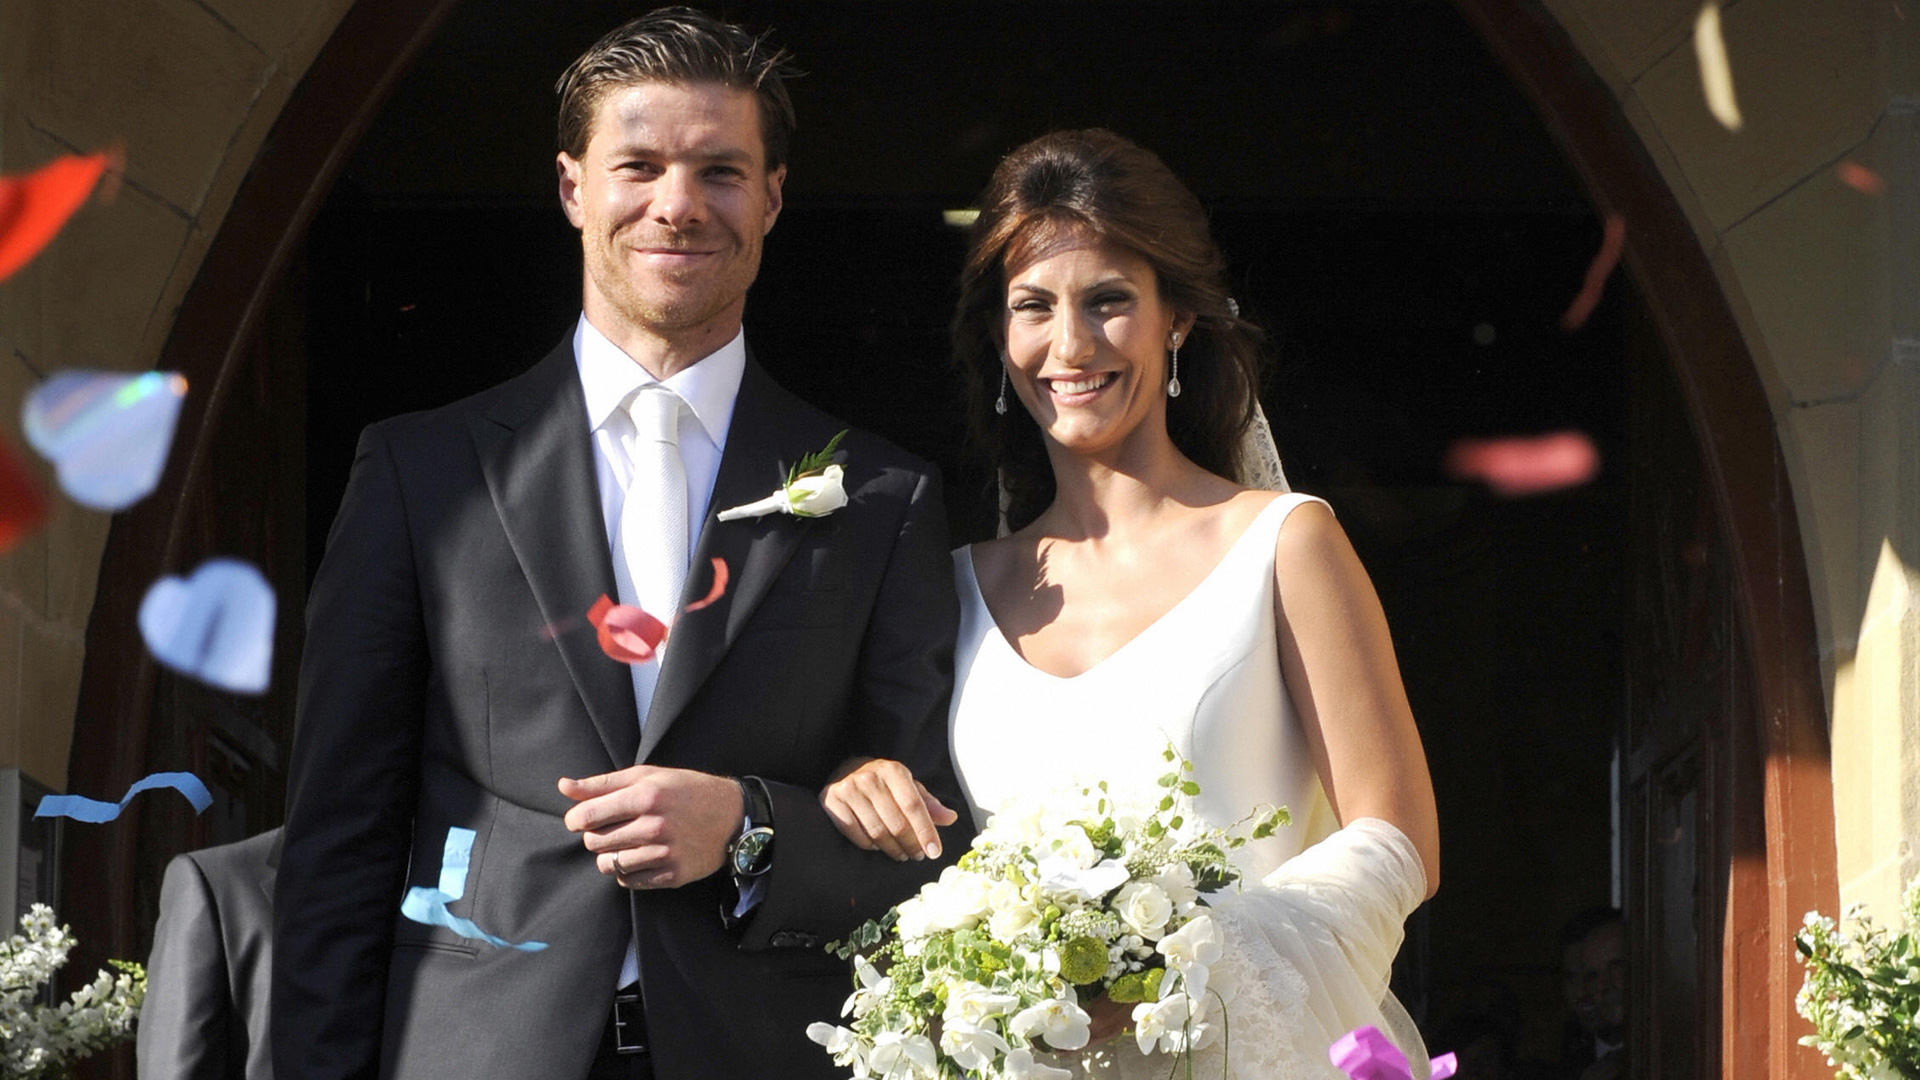 Xabi Alonso Wedding Xabi Alonso Wedding 11...